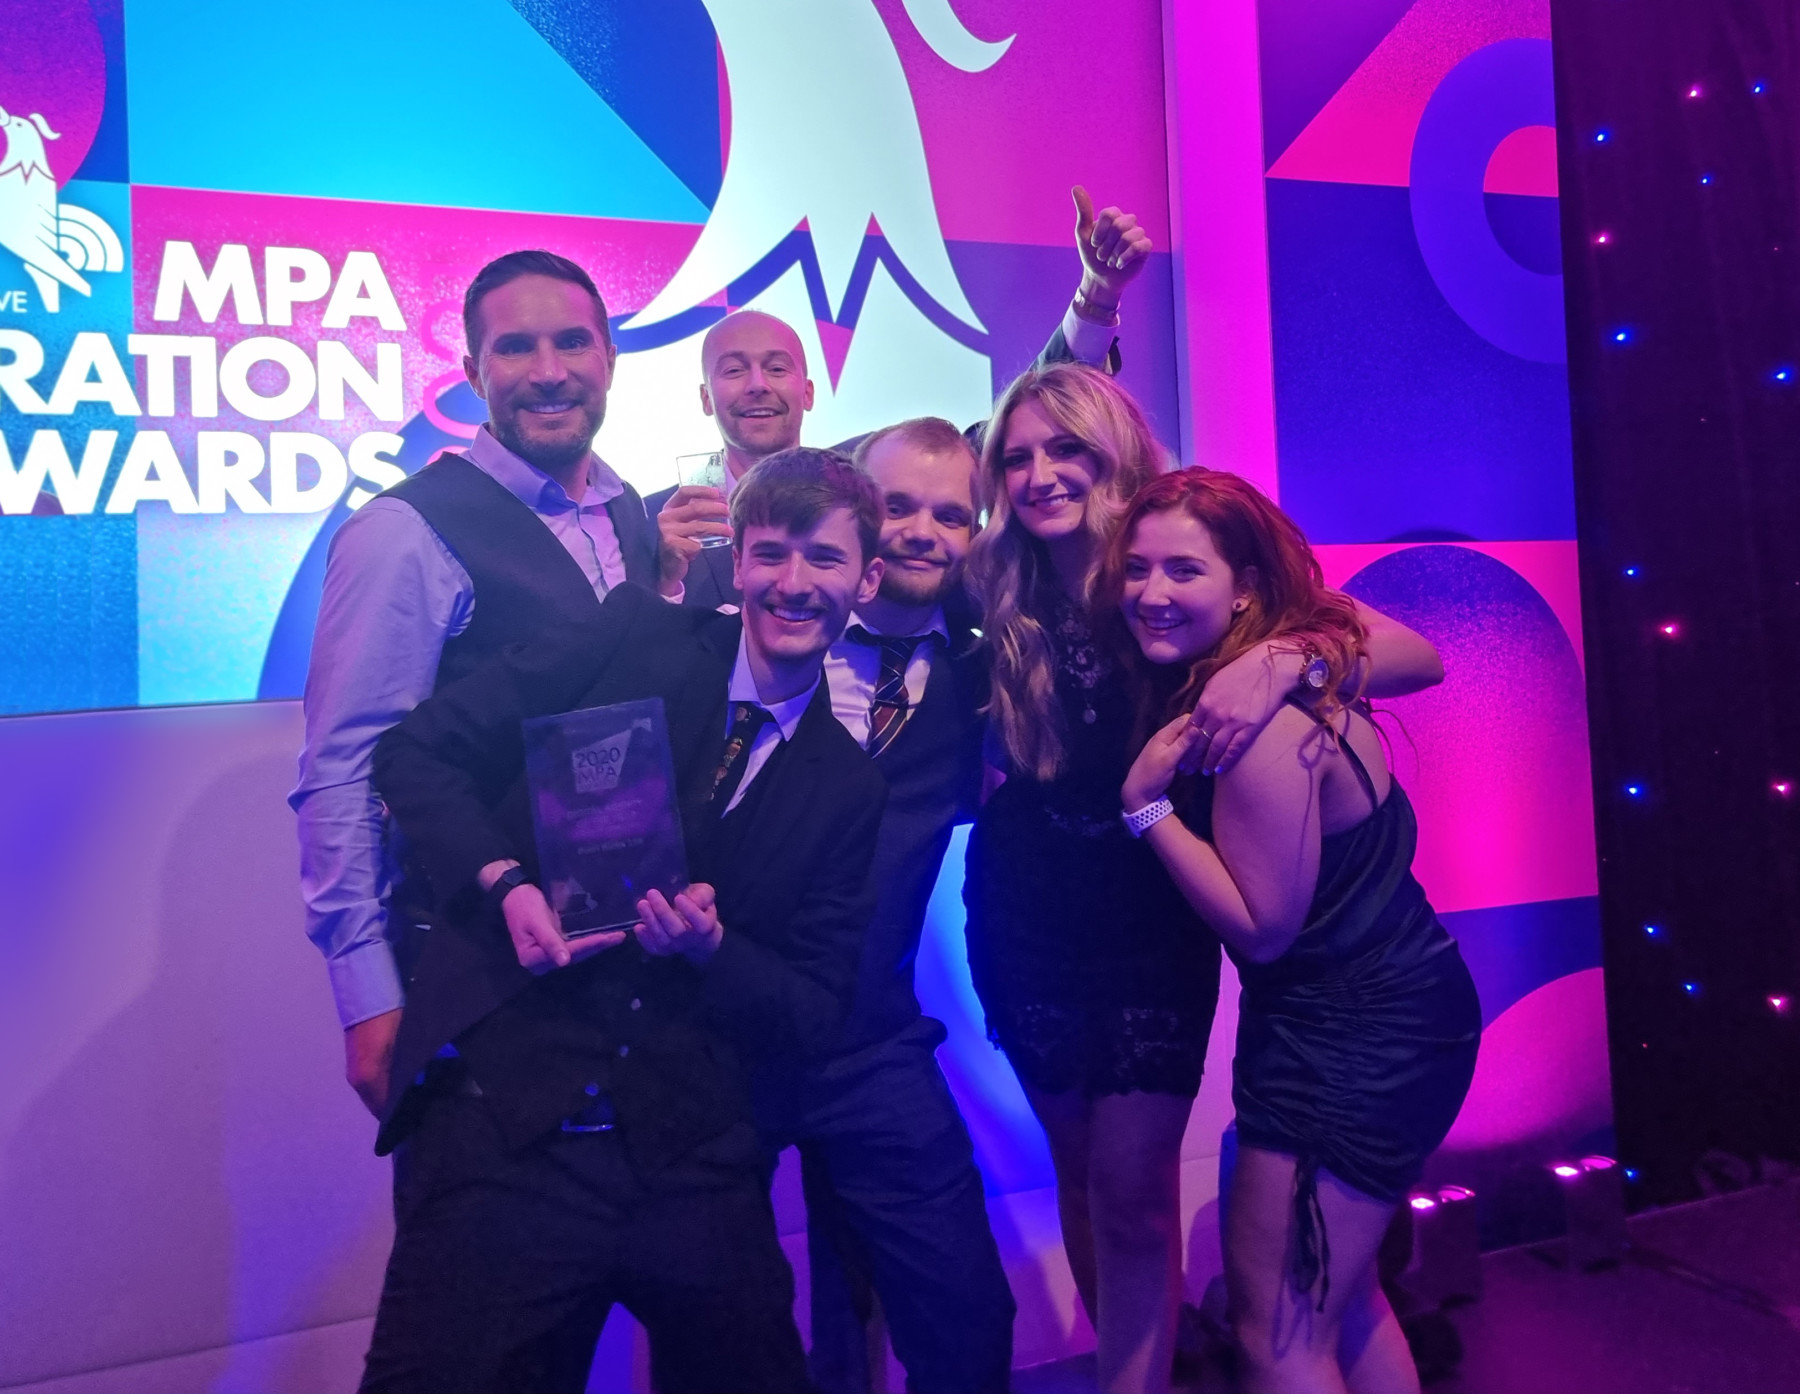 Pixel Kicks at the MPA Awards 2021 - Collecting our award on stage